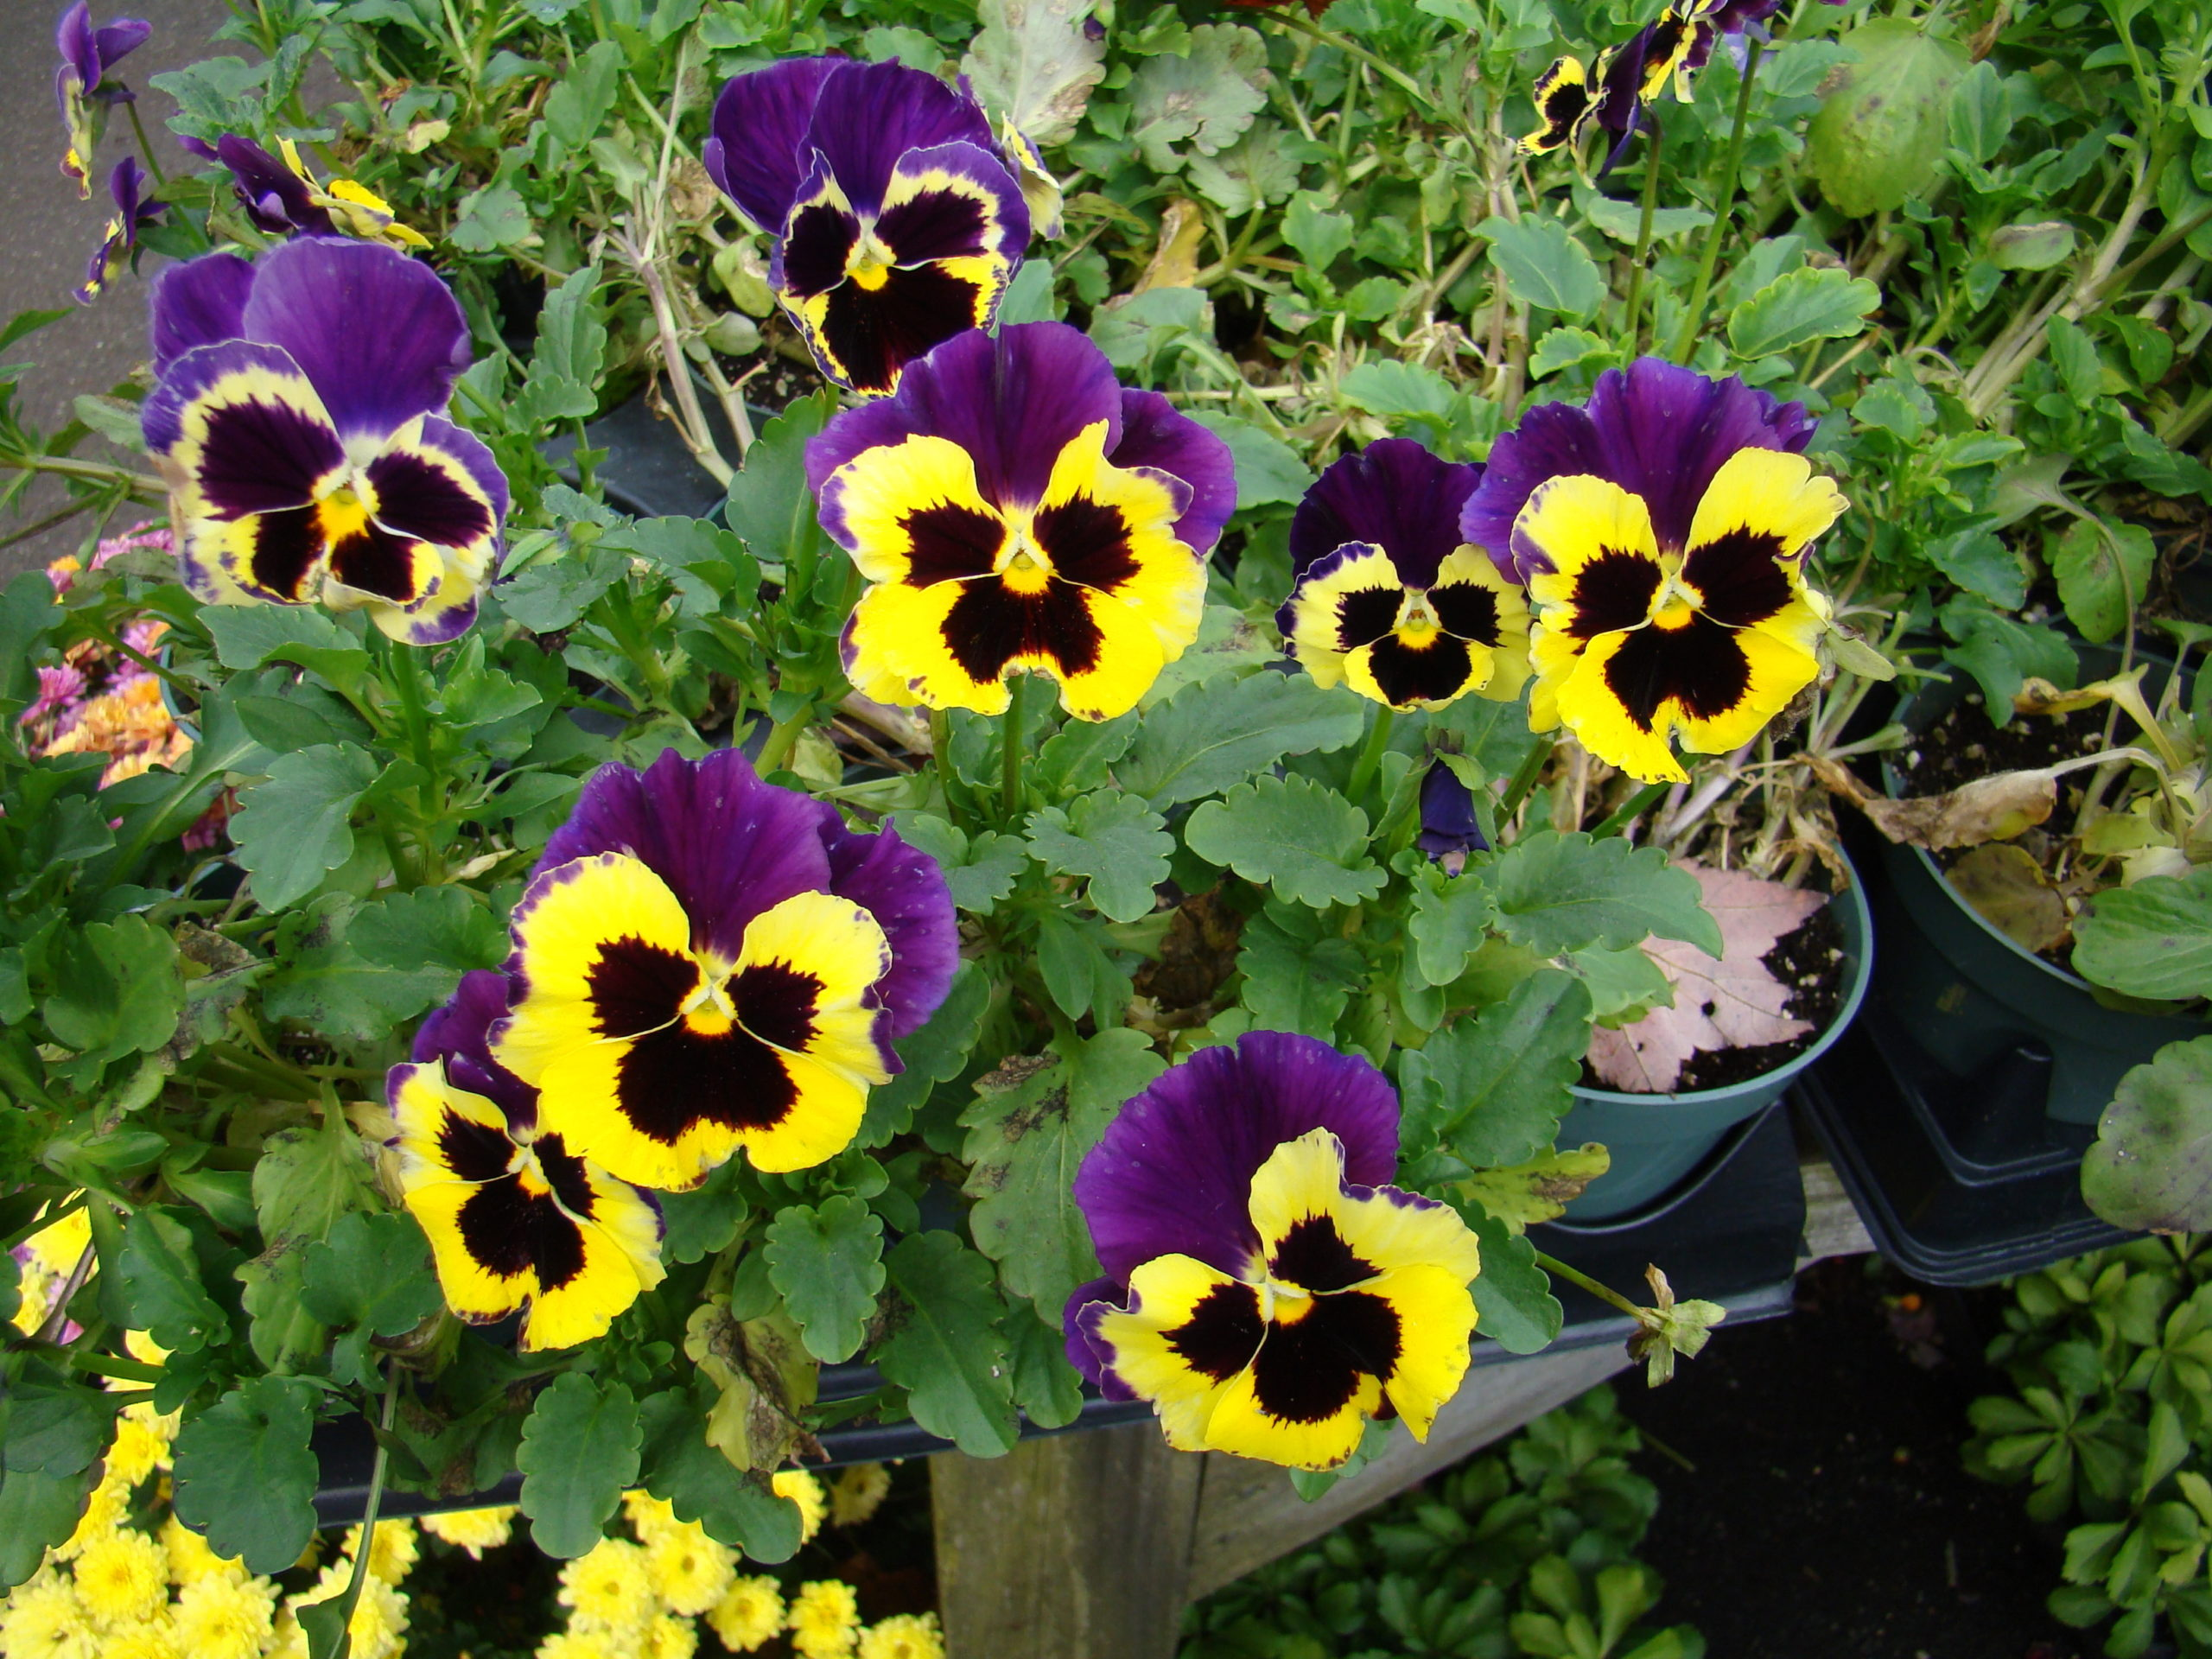 A classic old-fashioned pansy at a local garden center in a 4-inch pot.  This photo was taken in October, showing how versatile this plant can be even for late-season use in pots or planters.